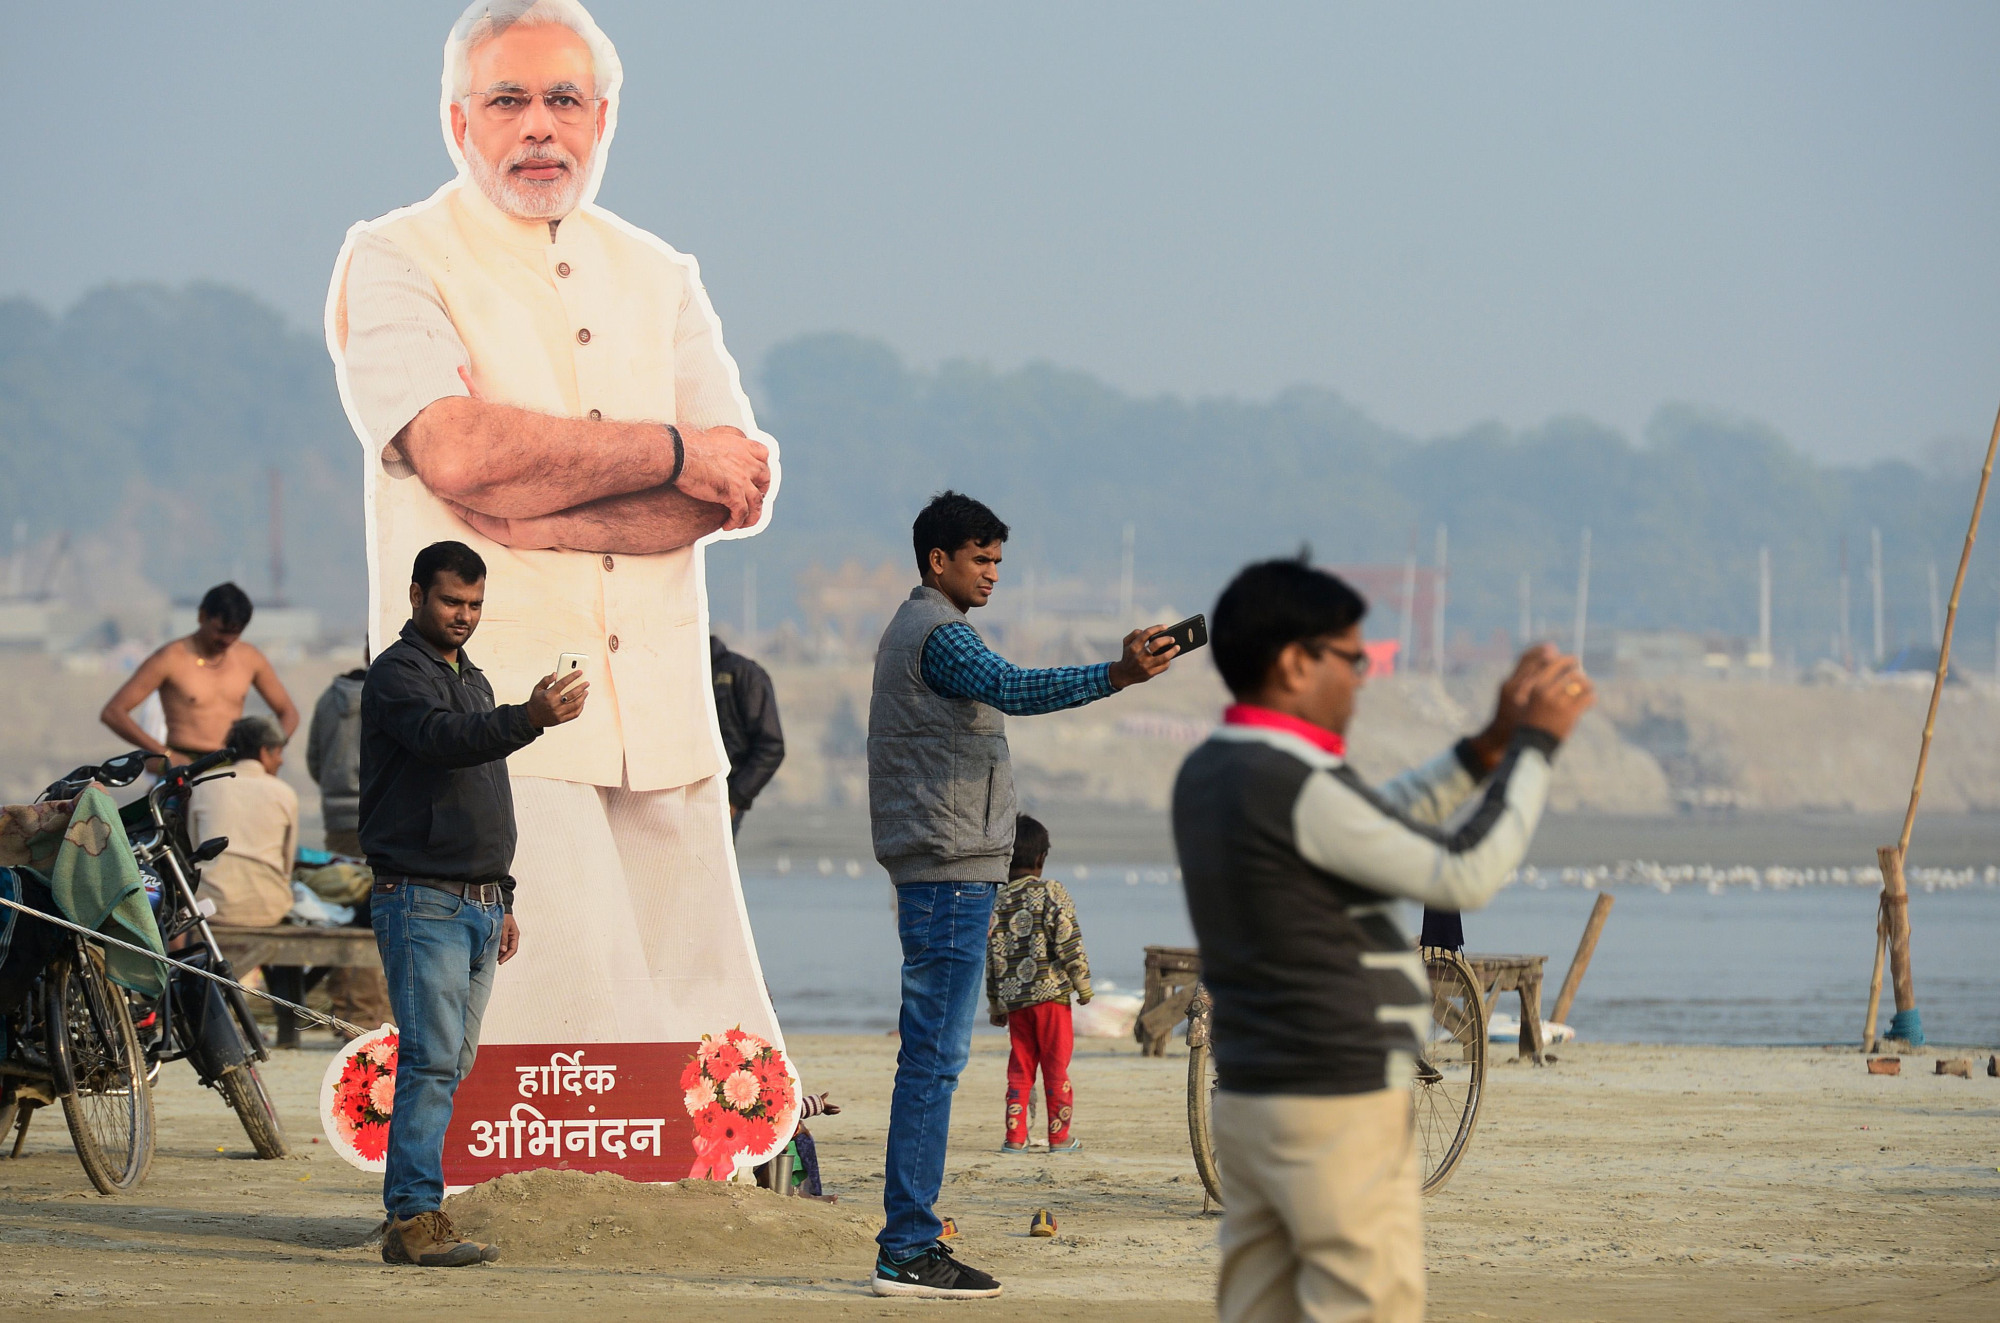 A cardboard cut-out of Indian Prime Minister Narendra Modi stands at the Kumbh Mela festival area in Allahabad on Thursday. The  event attracts millions of Hindu pilgrims to the sacred confluence of the Yamuna and Ganges rivers, where they will take ritual baths over 49 days from Jan. 15 until March 4. | AFP-JIJI